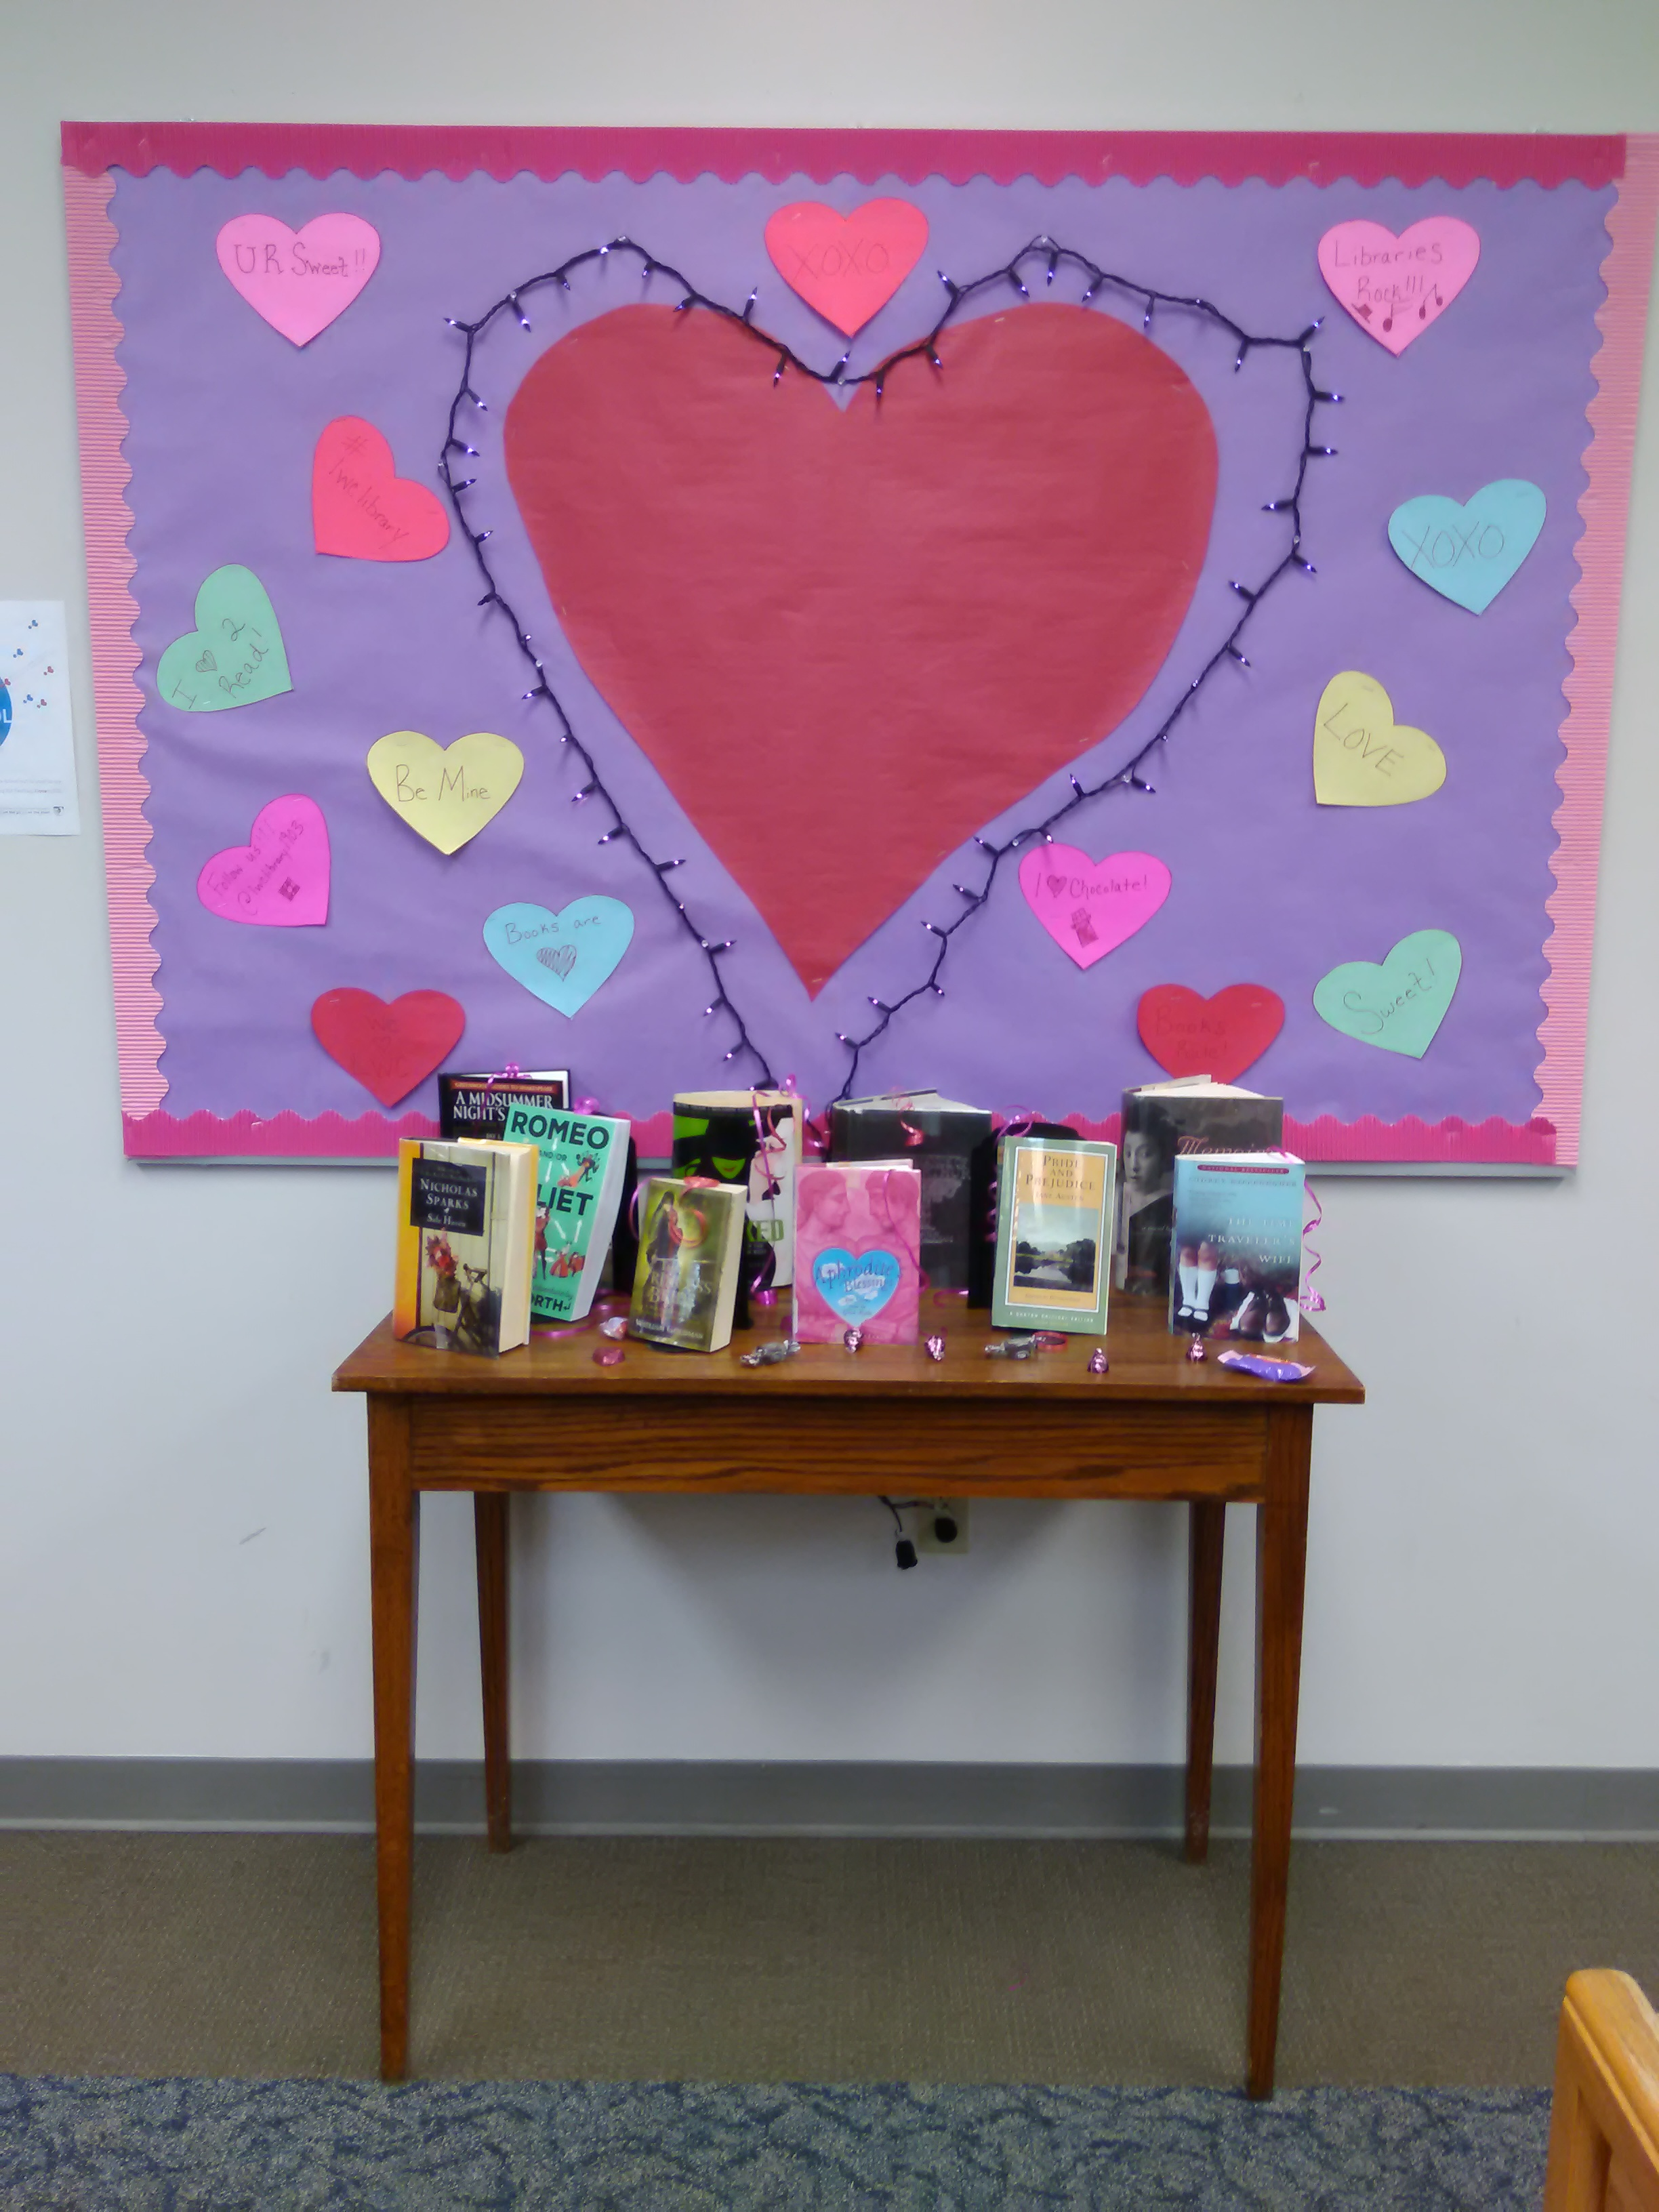 Valentine's Day Heart  display with books from our collection